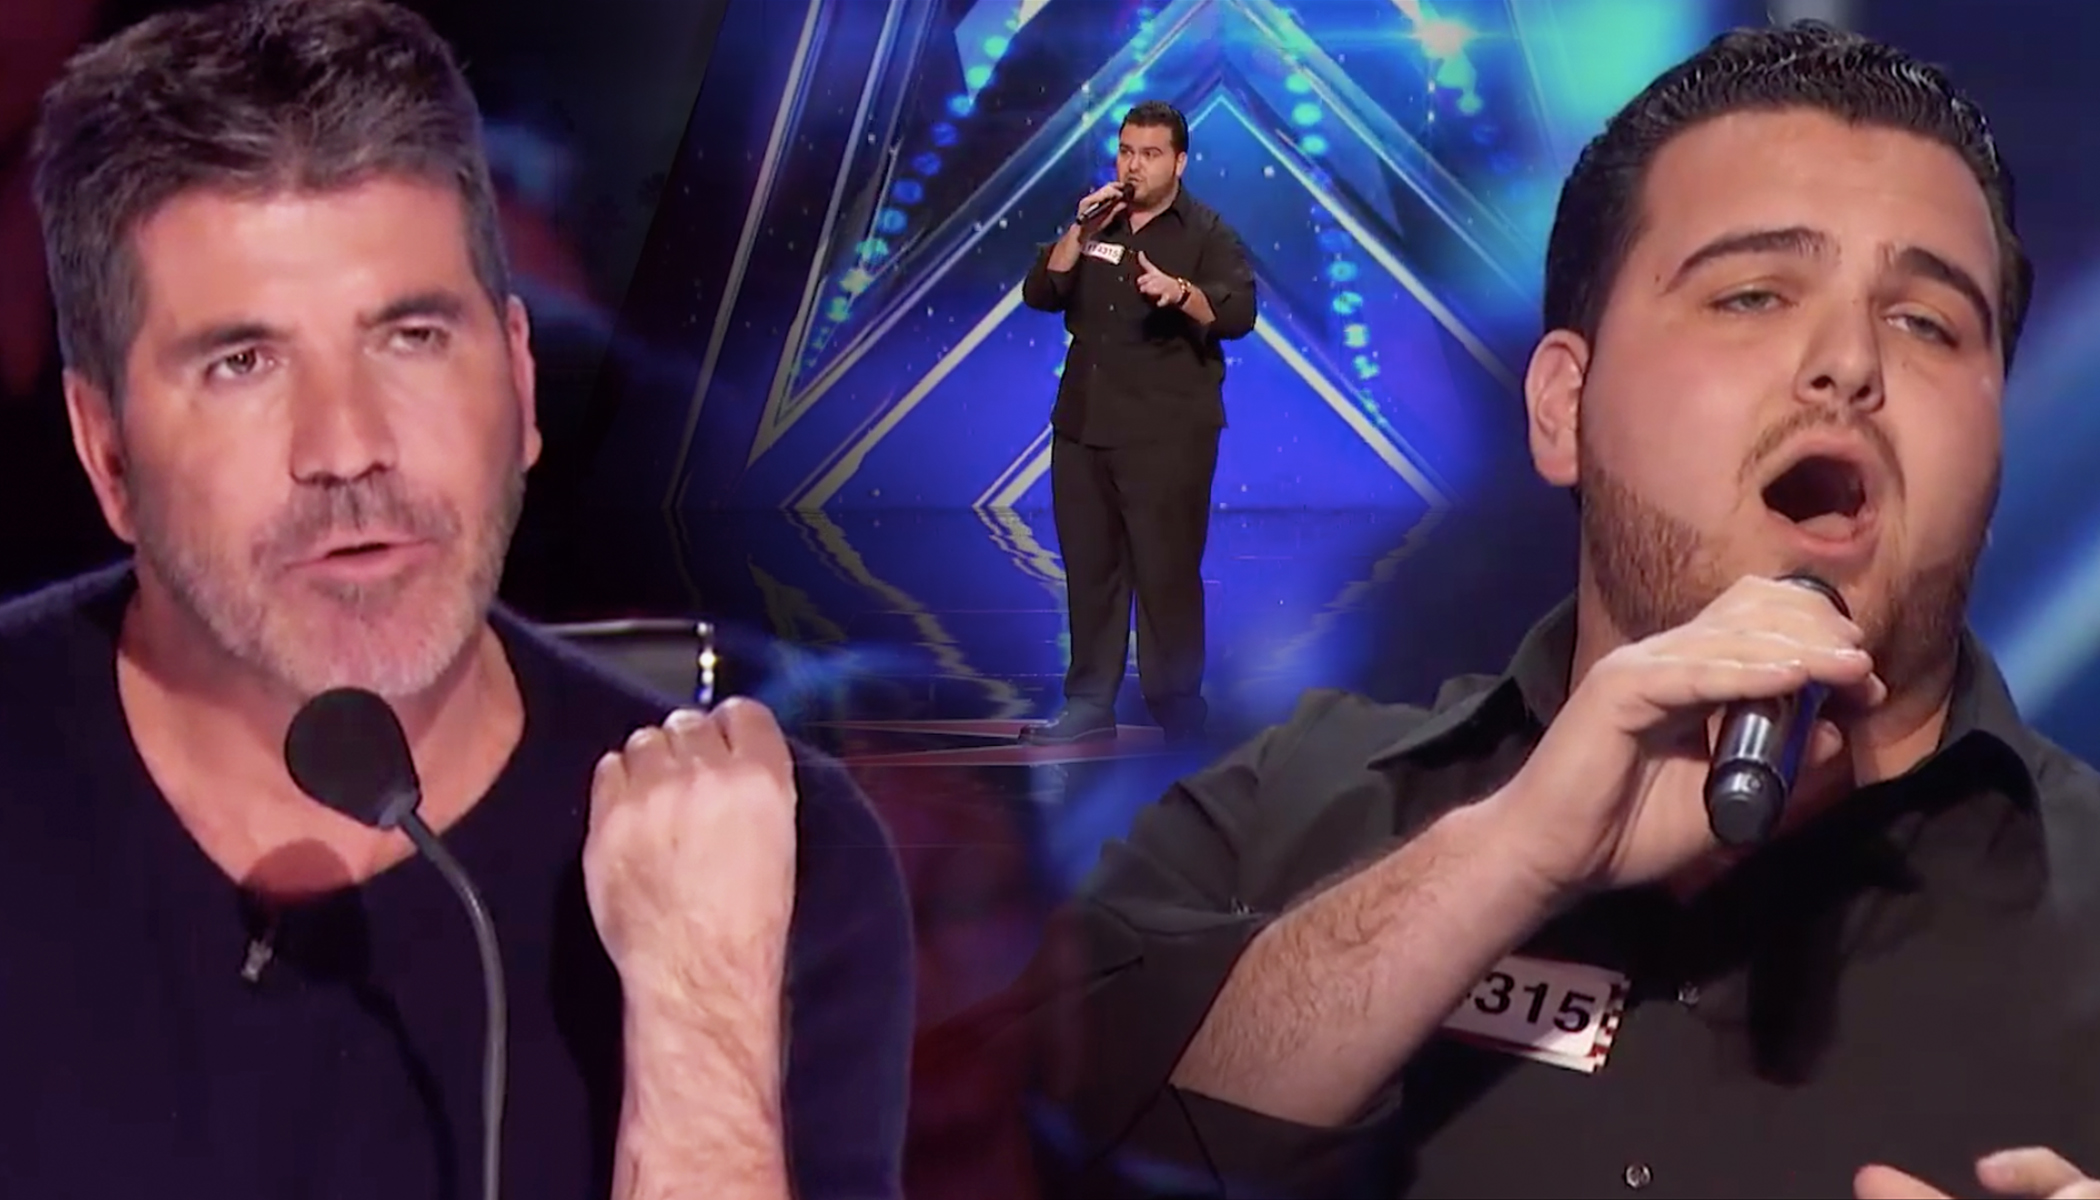 Pizza Delivery Boy Aims to Revive 'Old-Time Music,' His AGT Audition Lifts the Roof